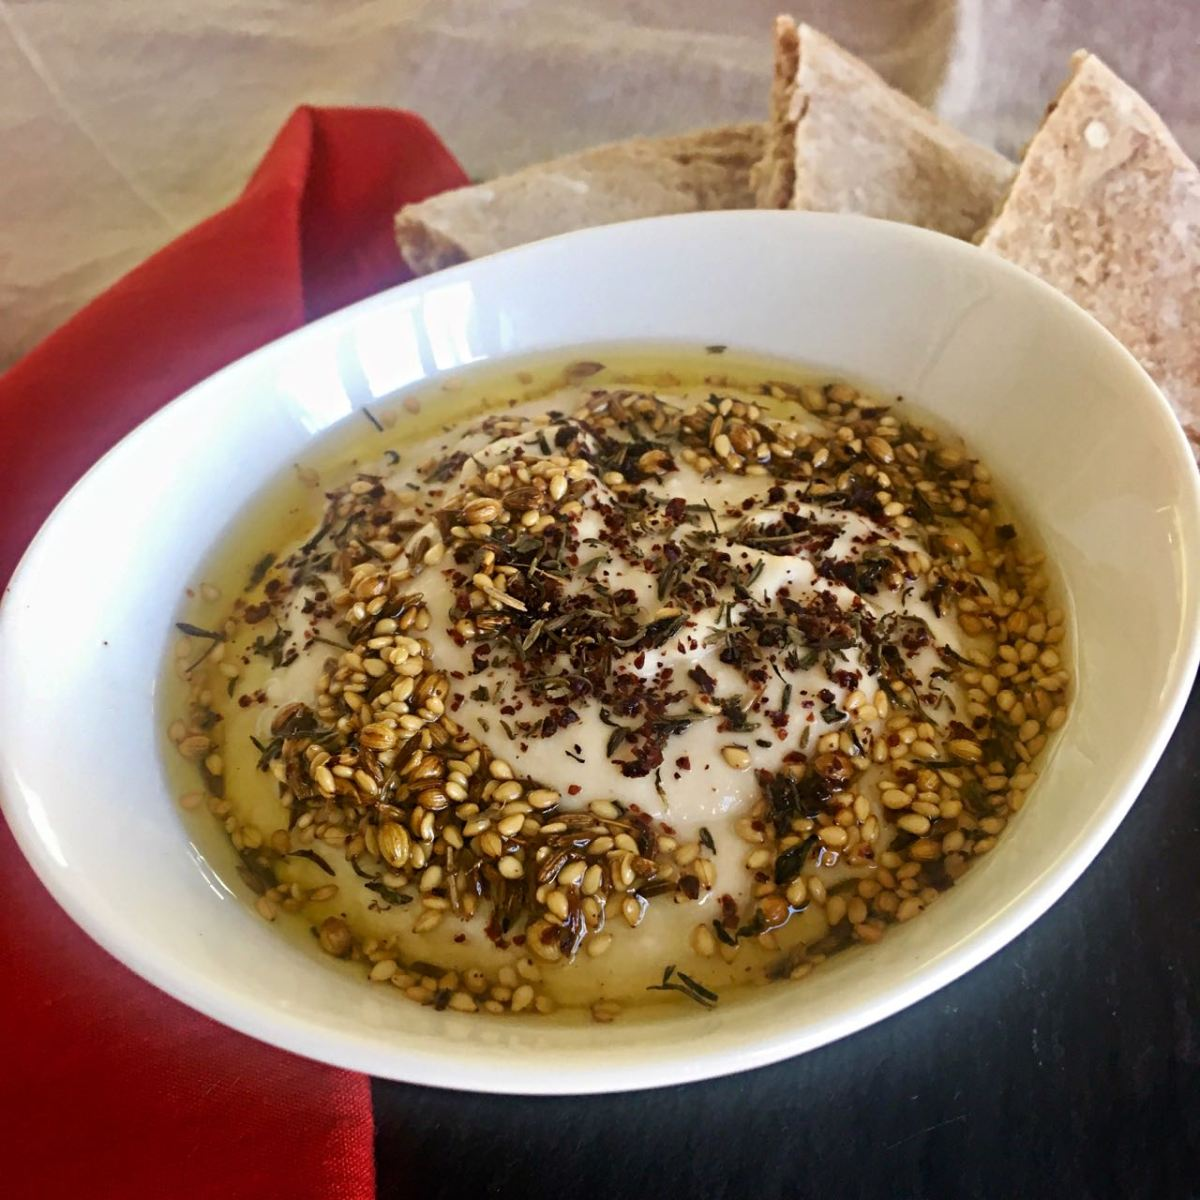 Festive White Bean Hummus, with Toasted Spices